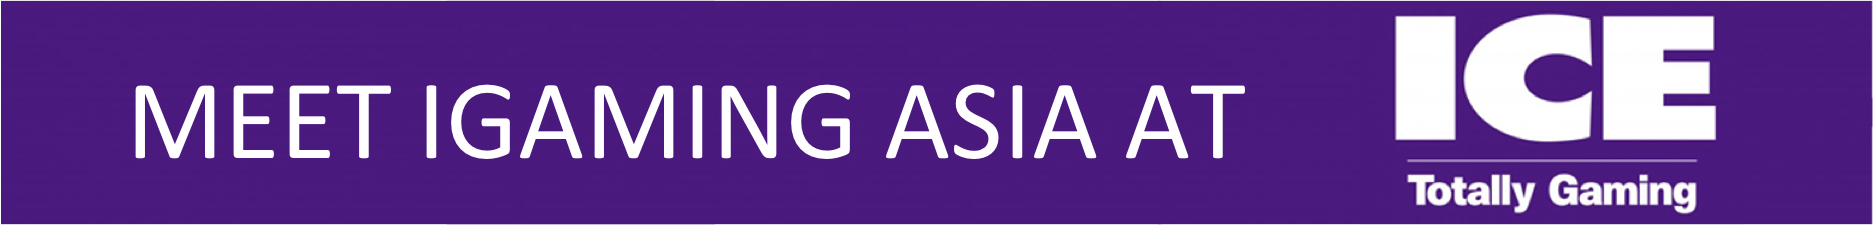 Meet igaming asia at ICE